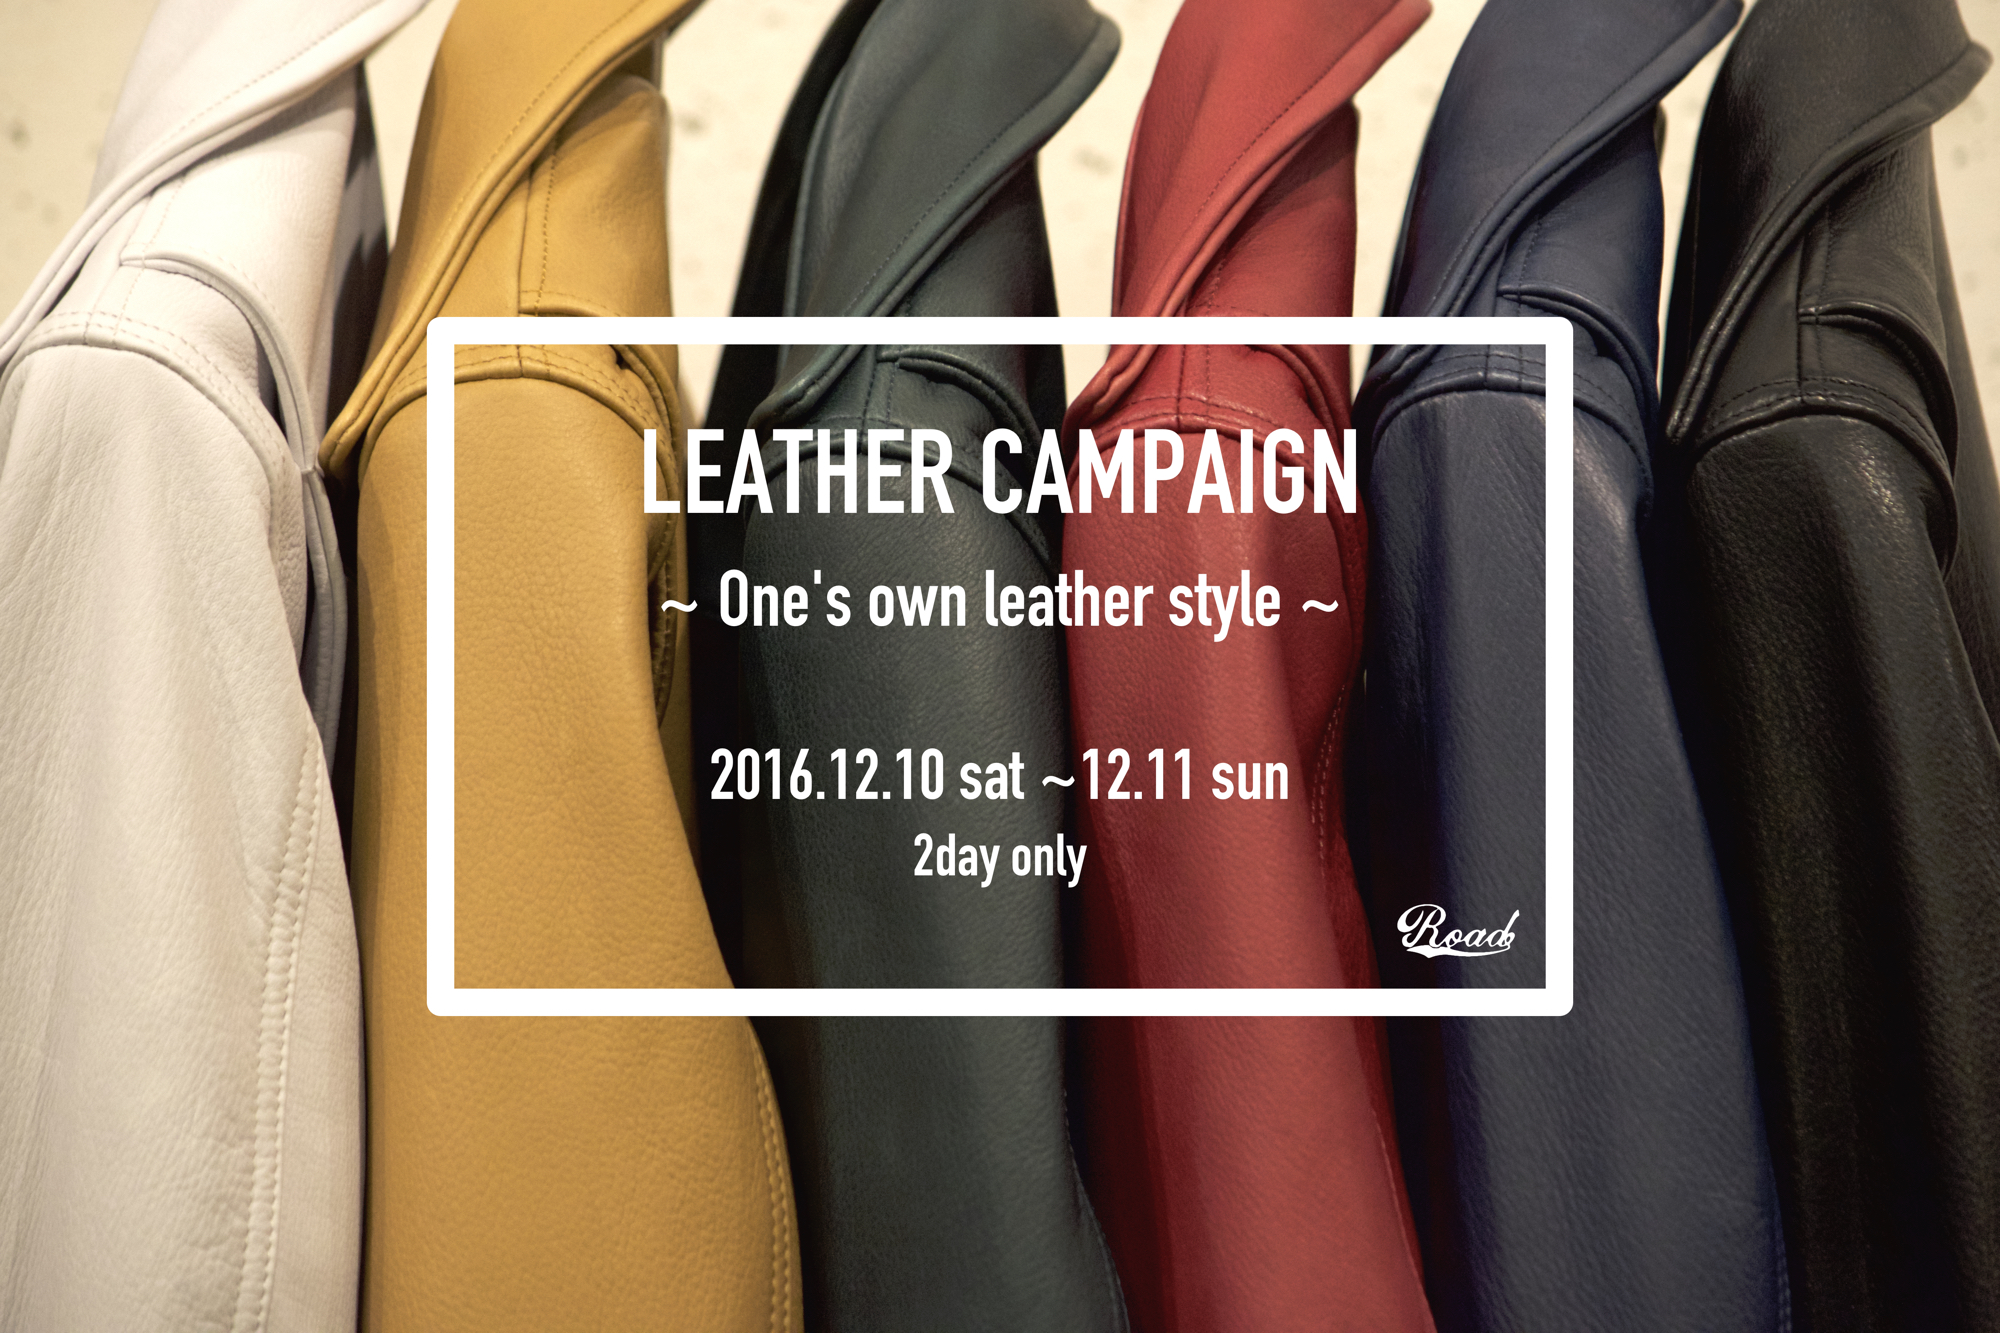 LEATHER CAMPAIGN